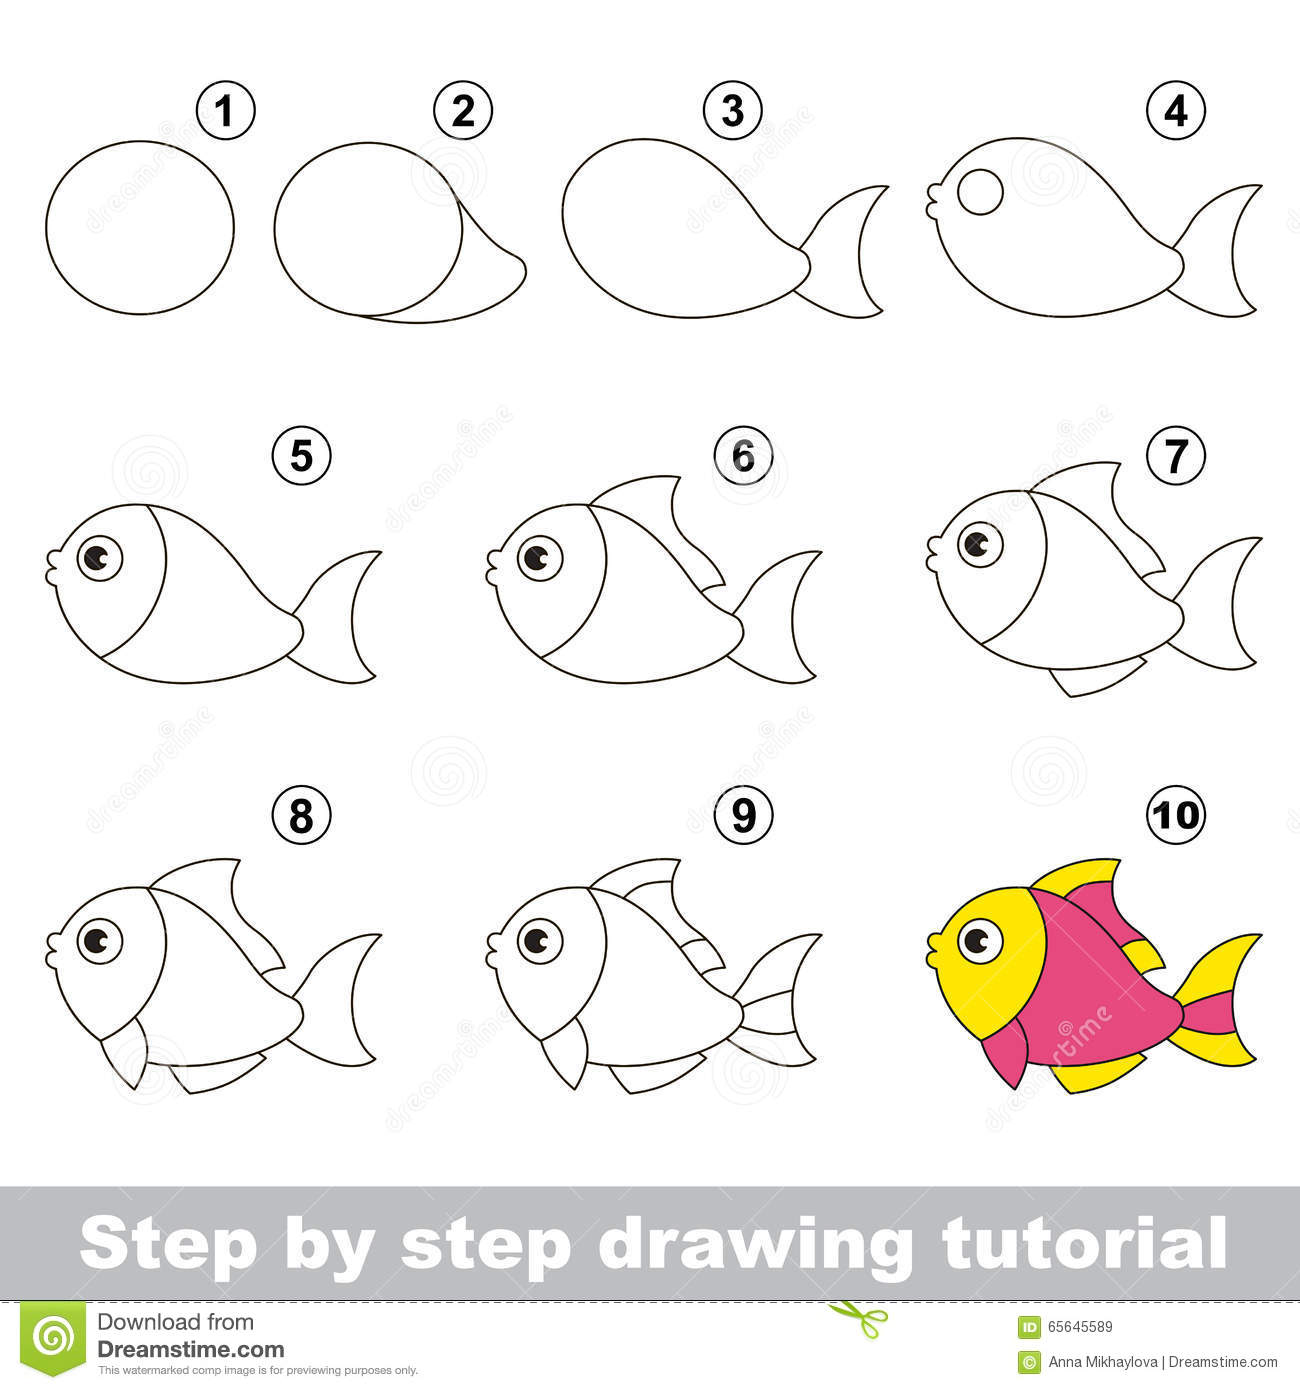 How to Draw a Cartoon Fish in a Few Easy Steps  Easy